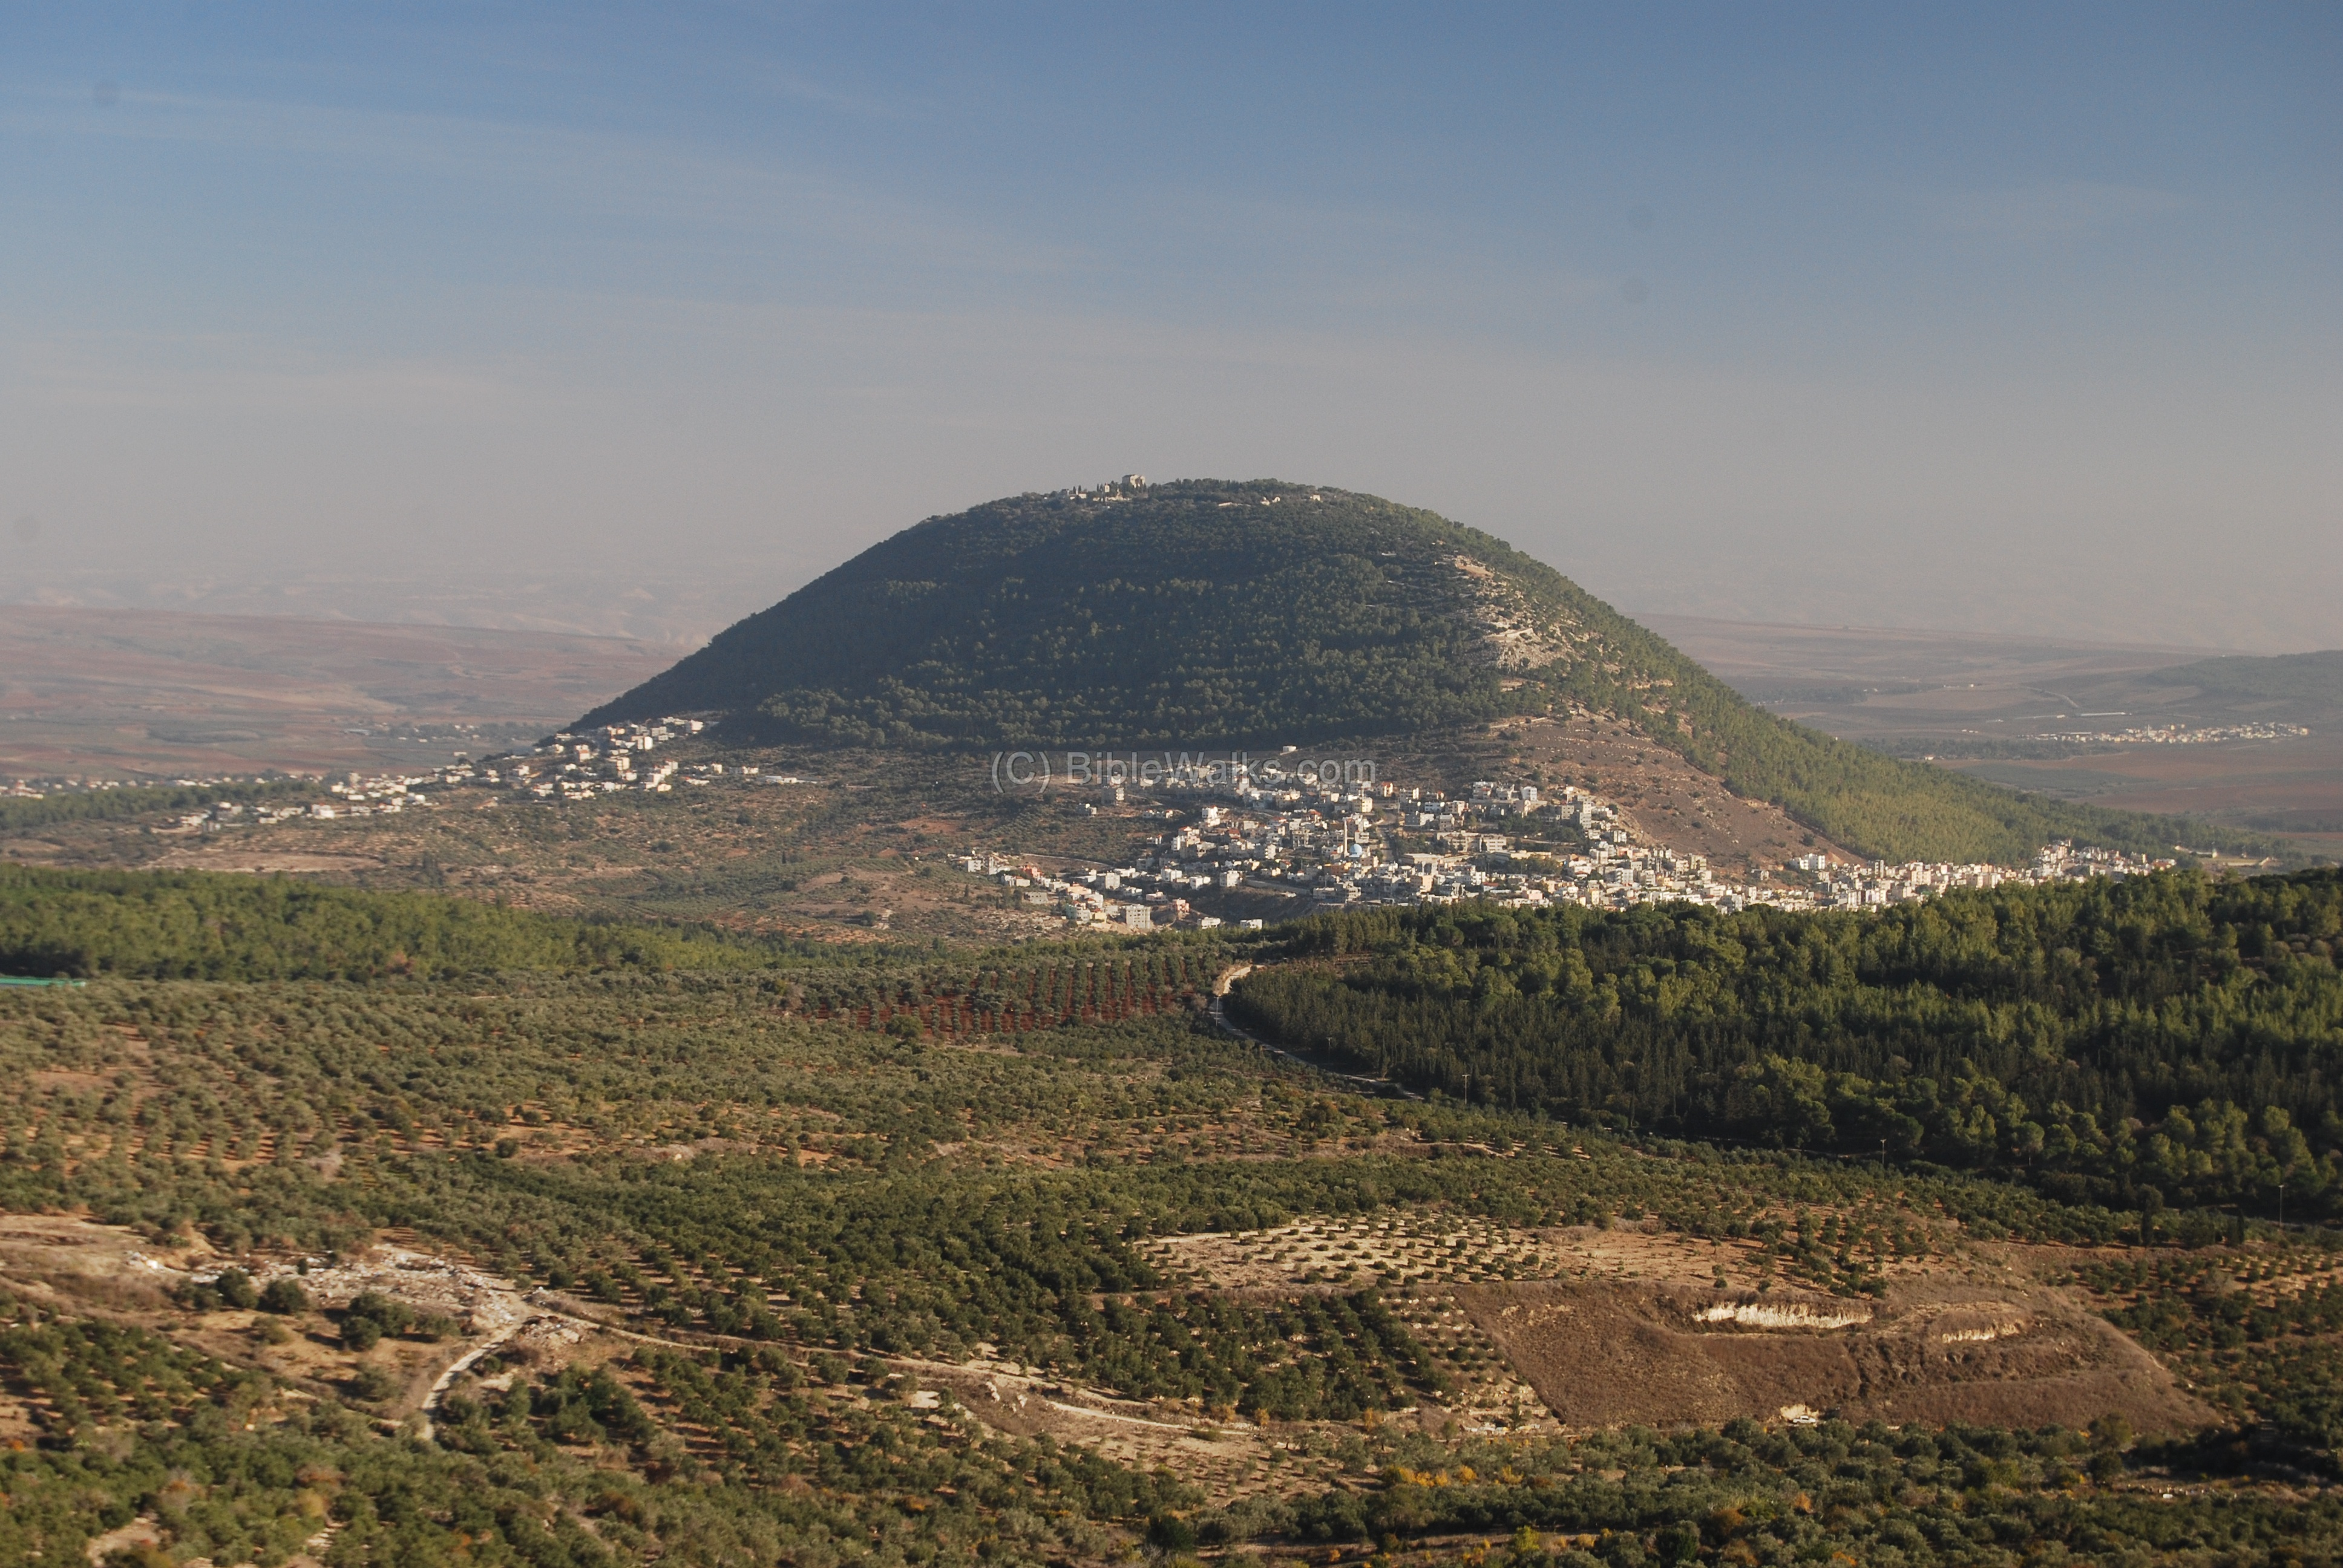 Holy Mount Tabor - Place of the Transfiguration 71